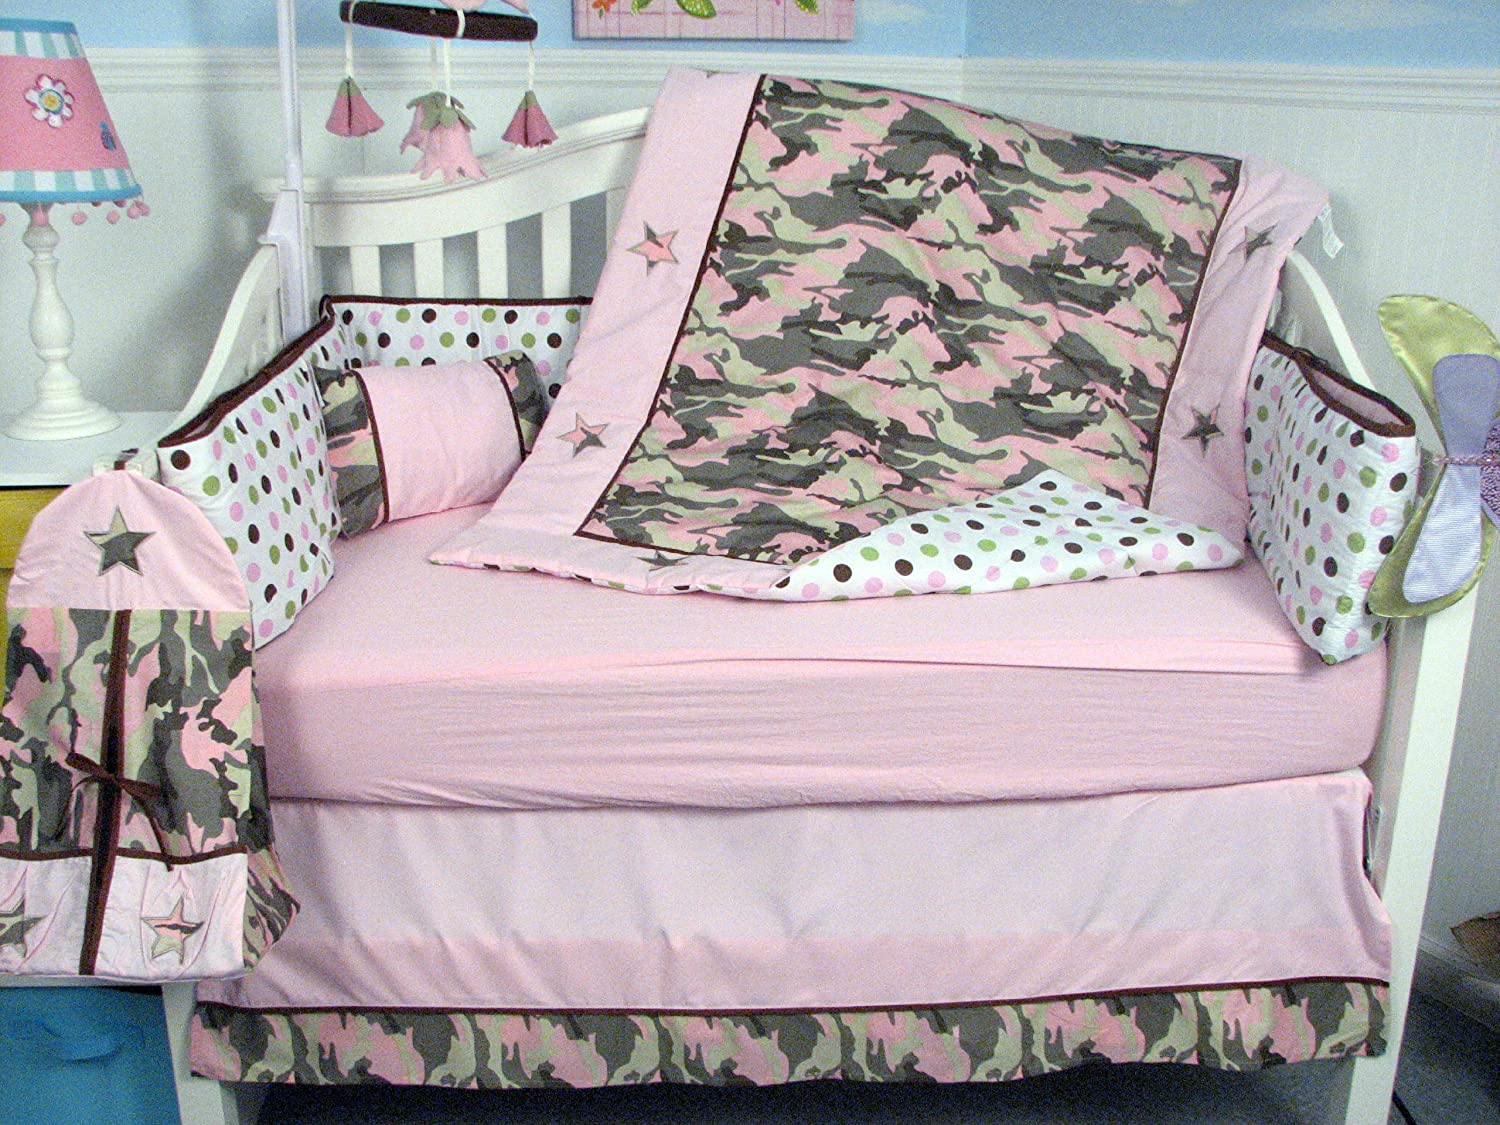 Amazon.com : SOHO Girl Camo Baby Crib Nursery Bedding Set 13 pcs included  Diaper Bag with Changing Pad & Bottle Case : Baby